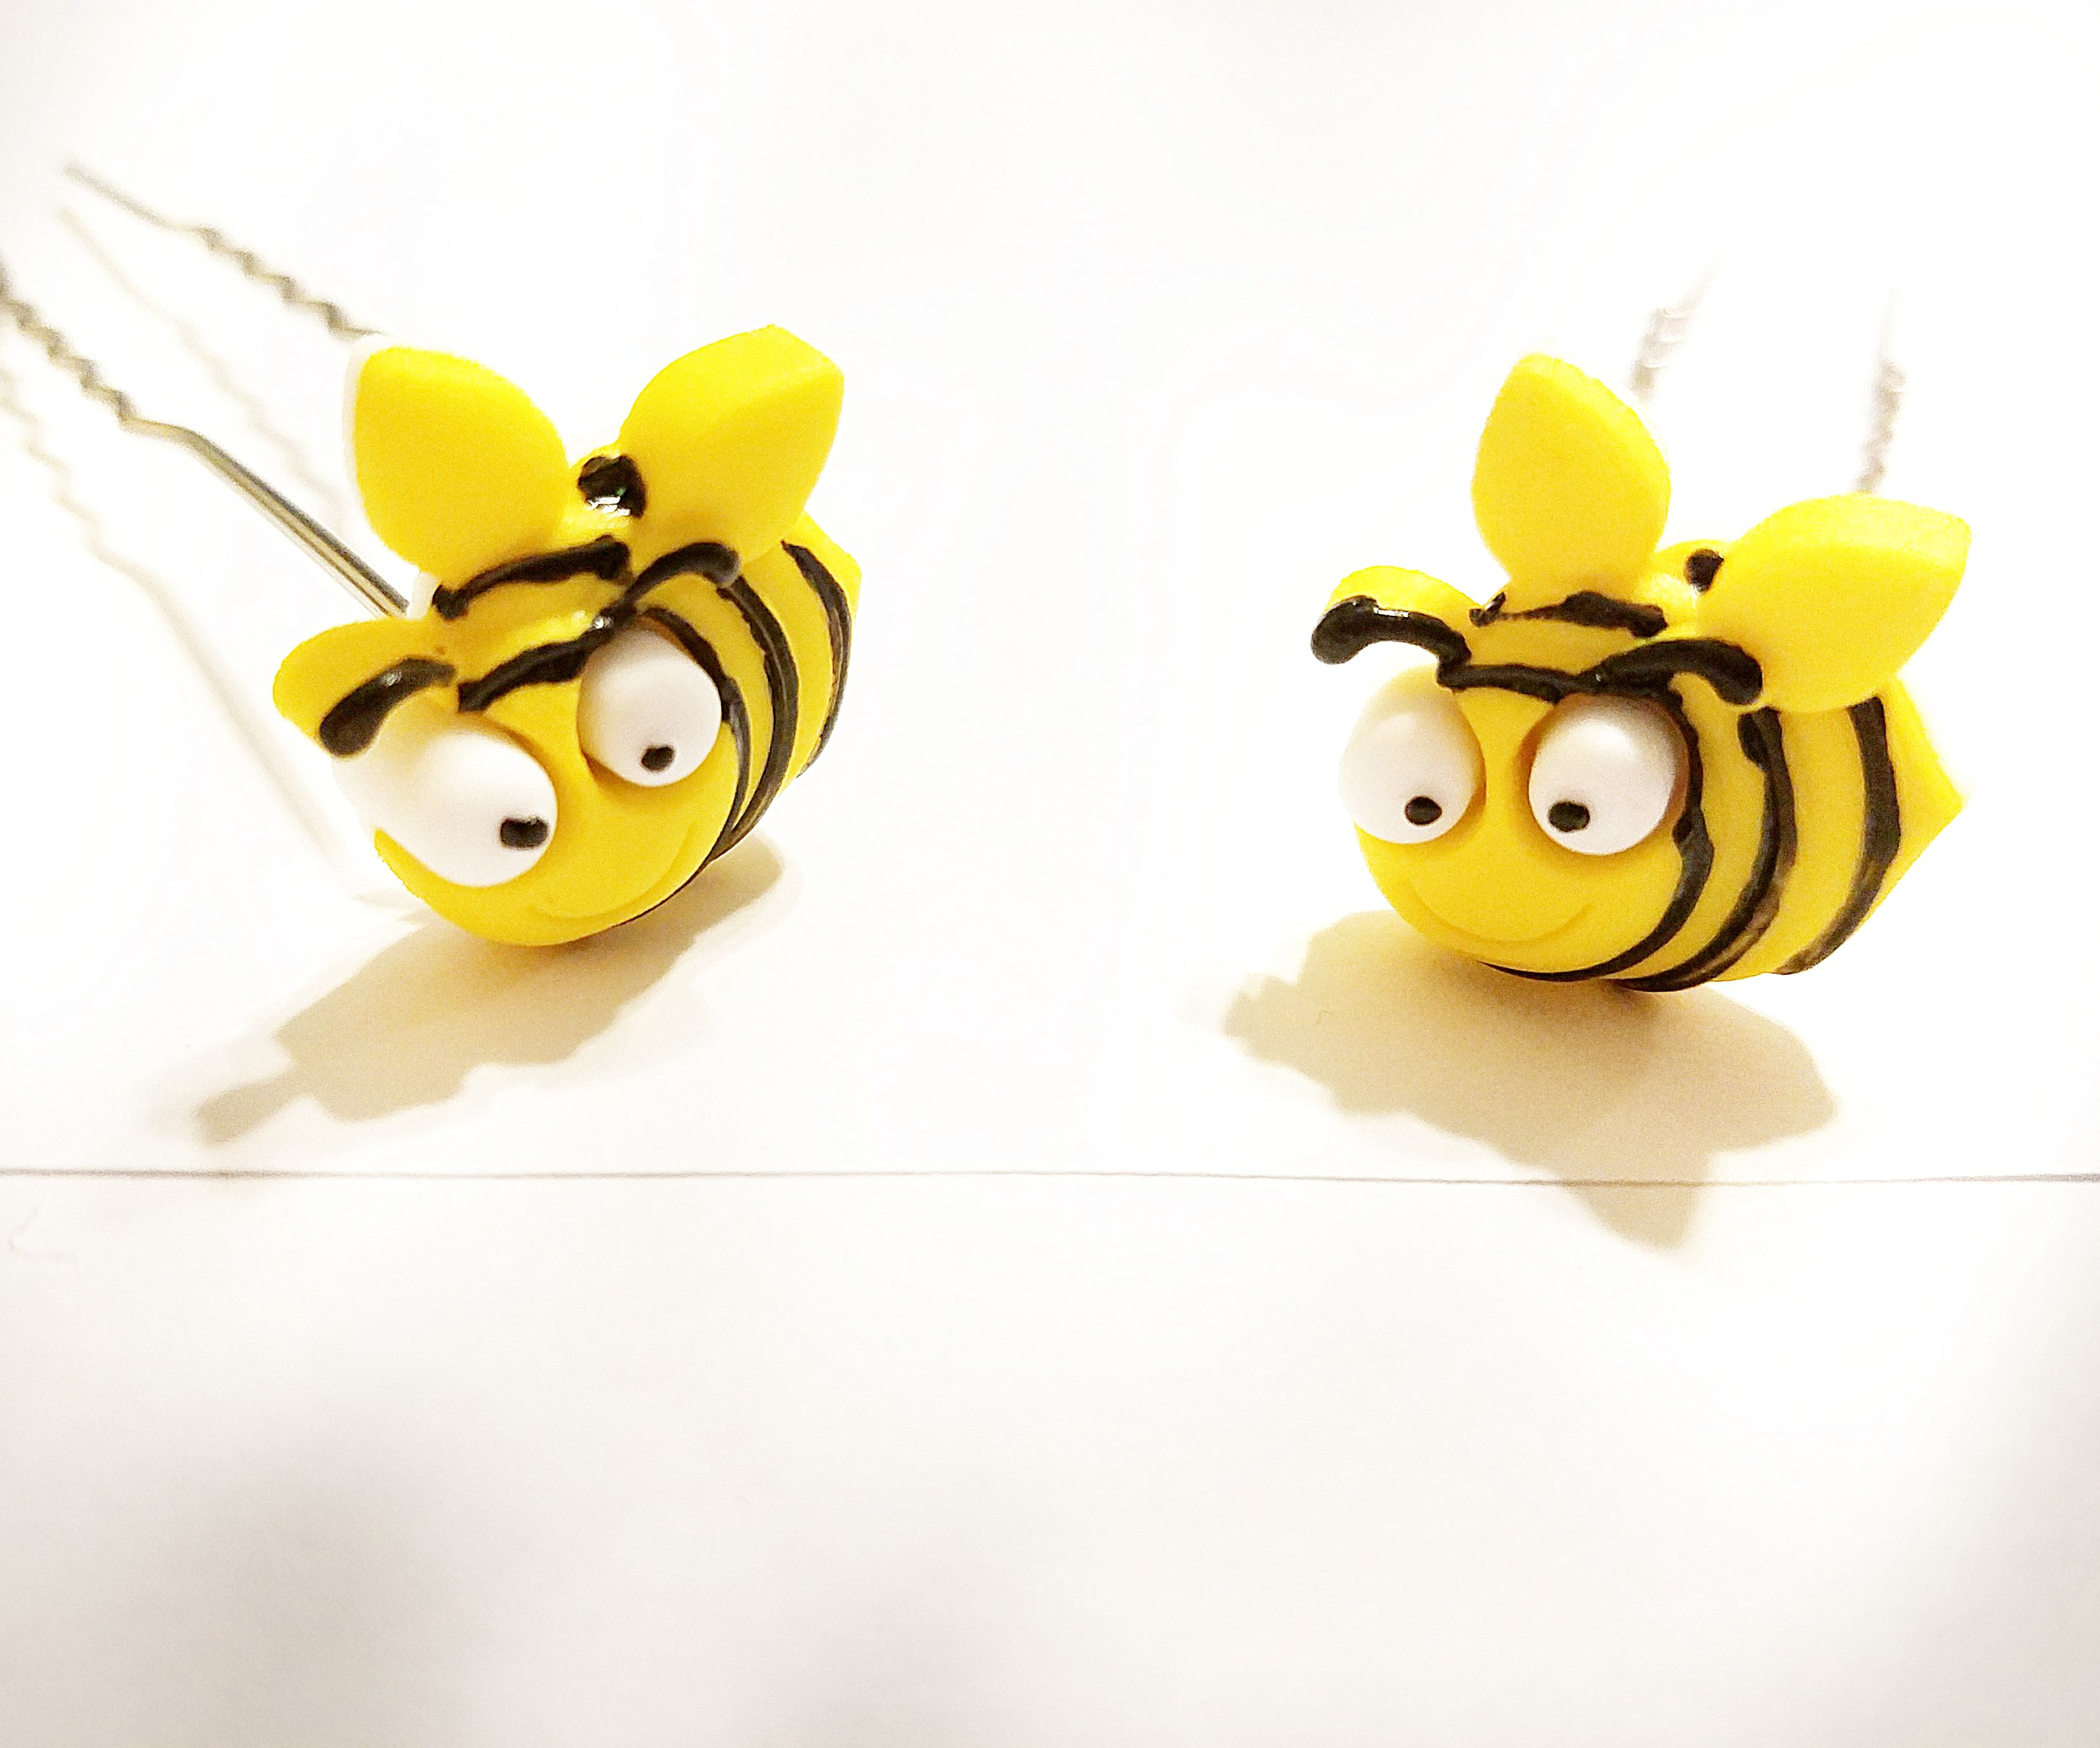 giftsforher uniquegifts kriszcreations hairpin hairjewelry bees yellow